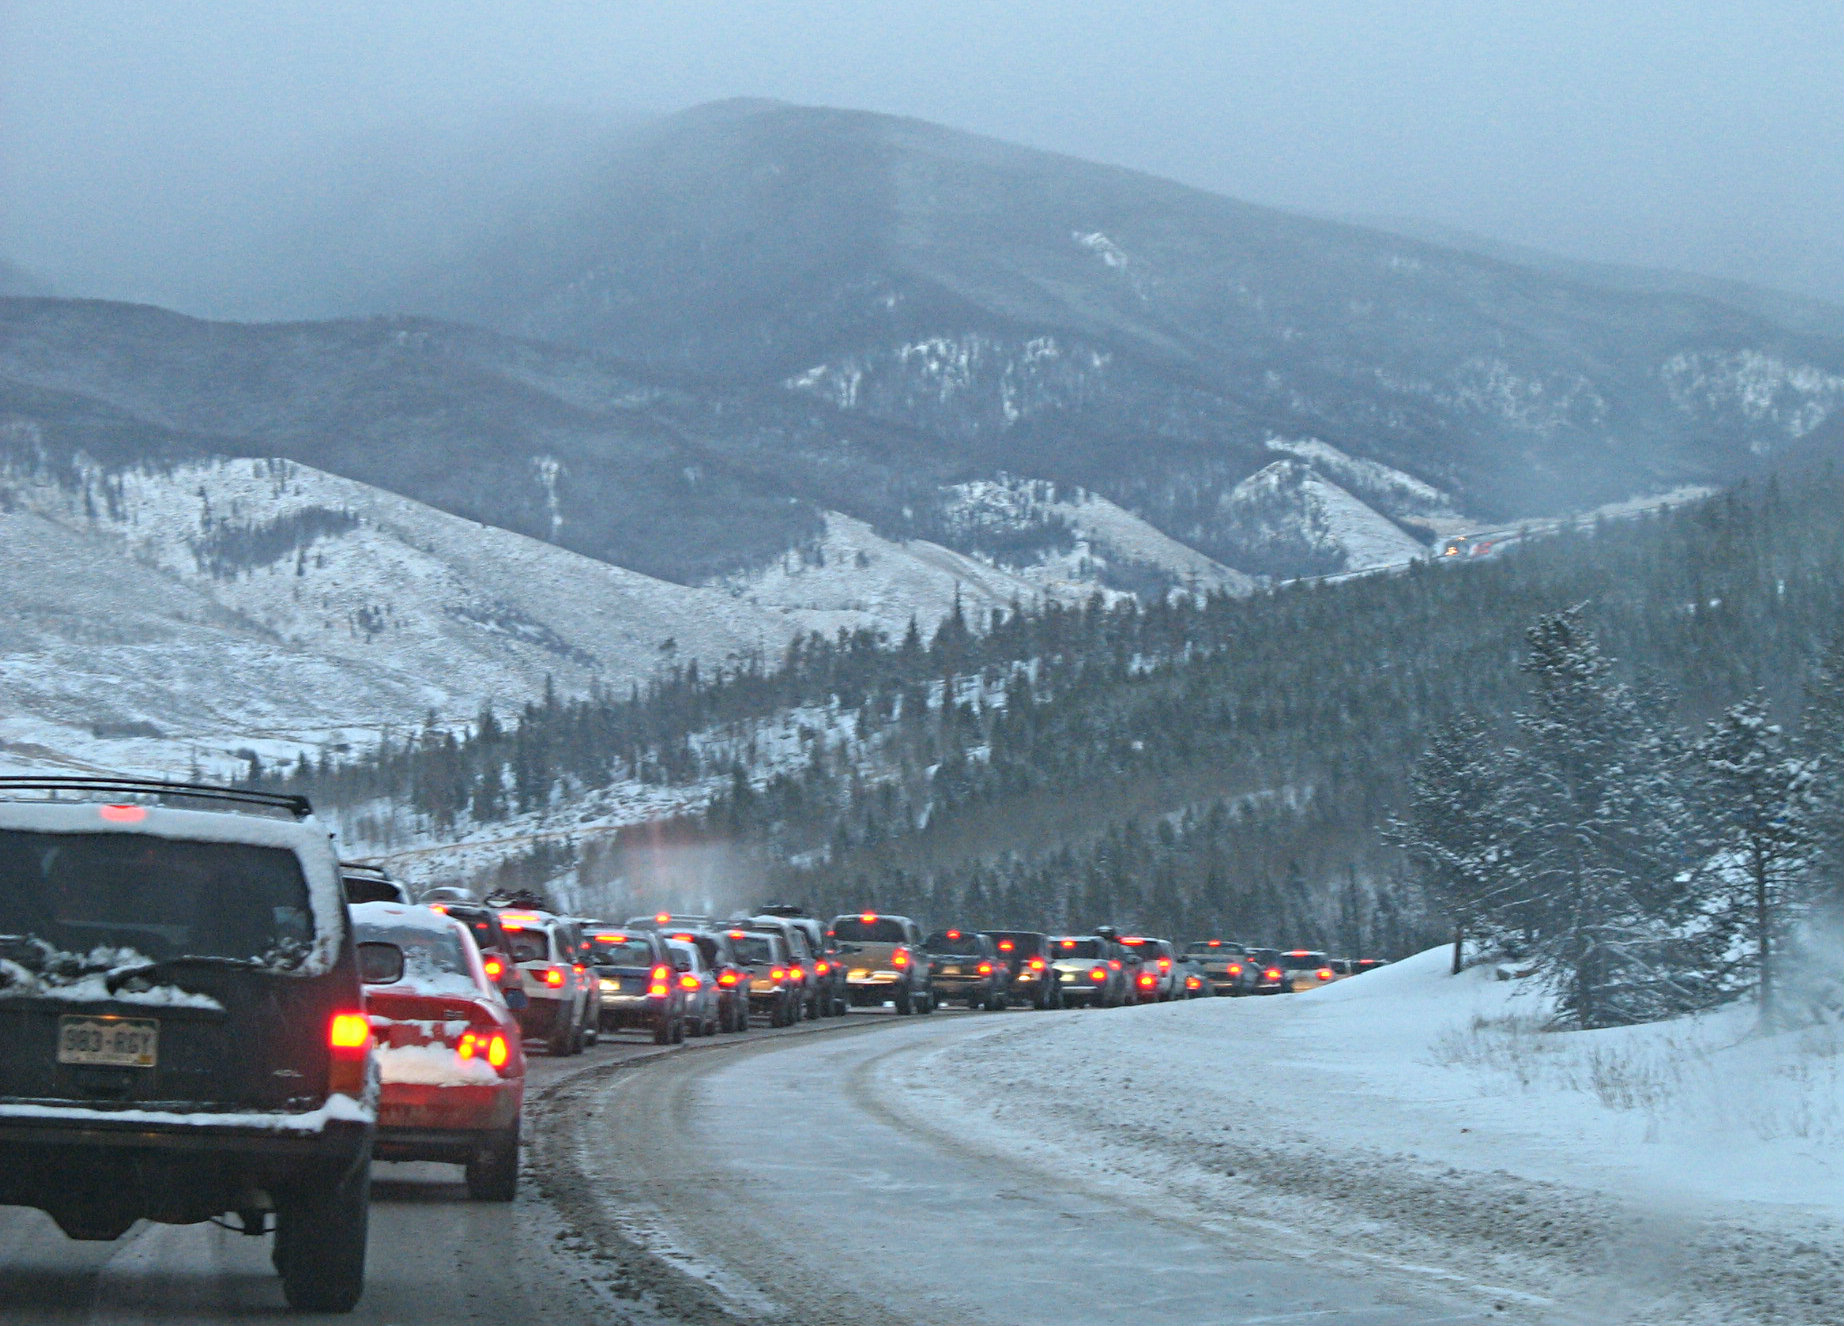 Photo: I-70 traffic between Frisco and Denver